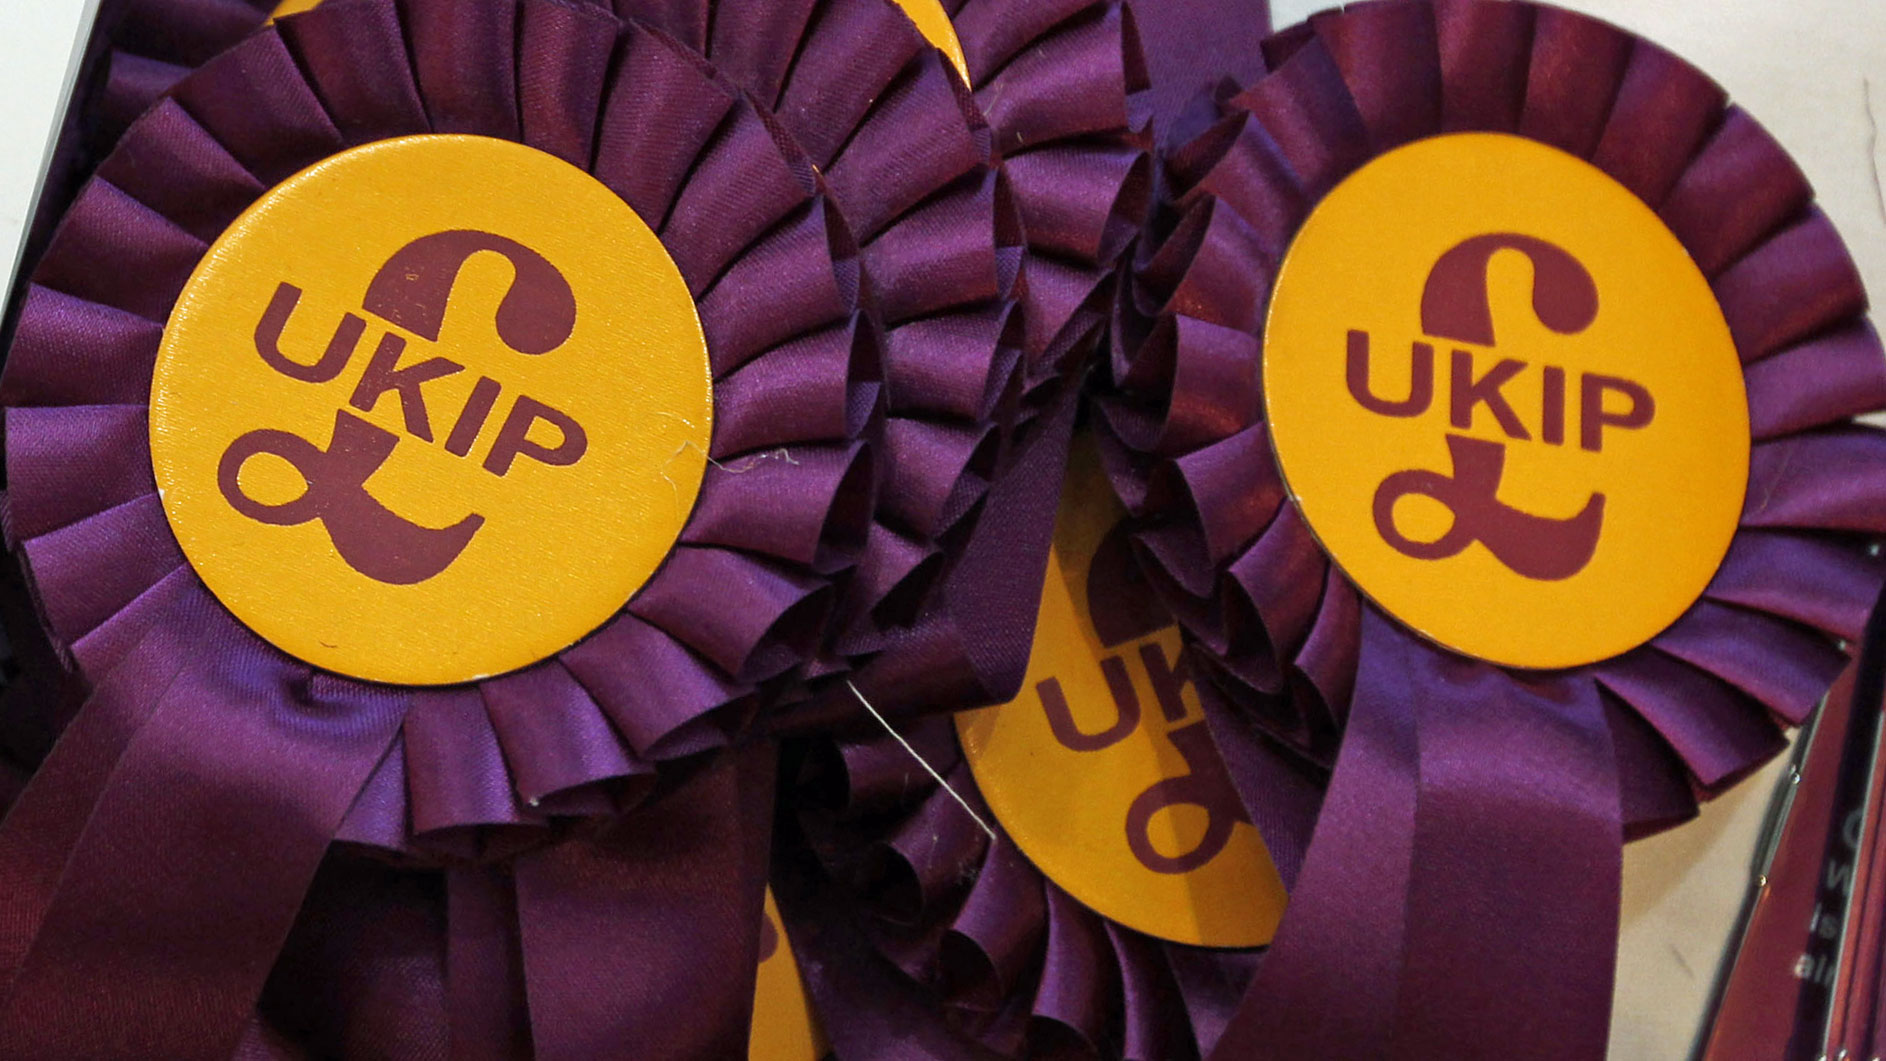 Now UKIP is weighing into the small business space